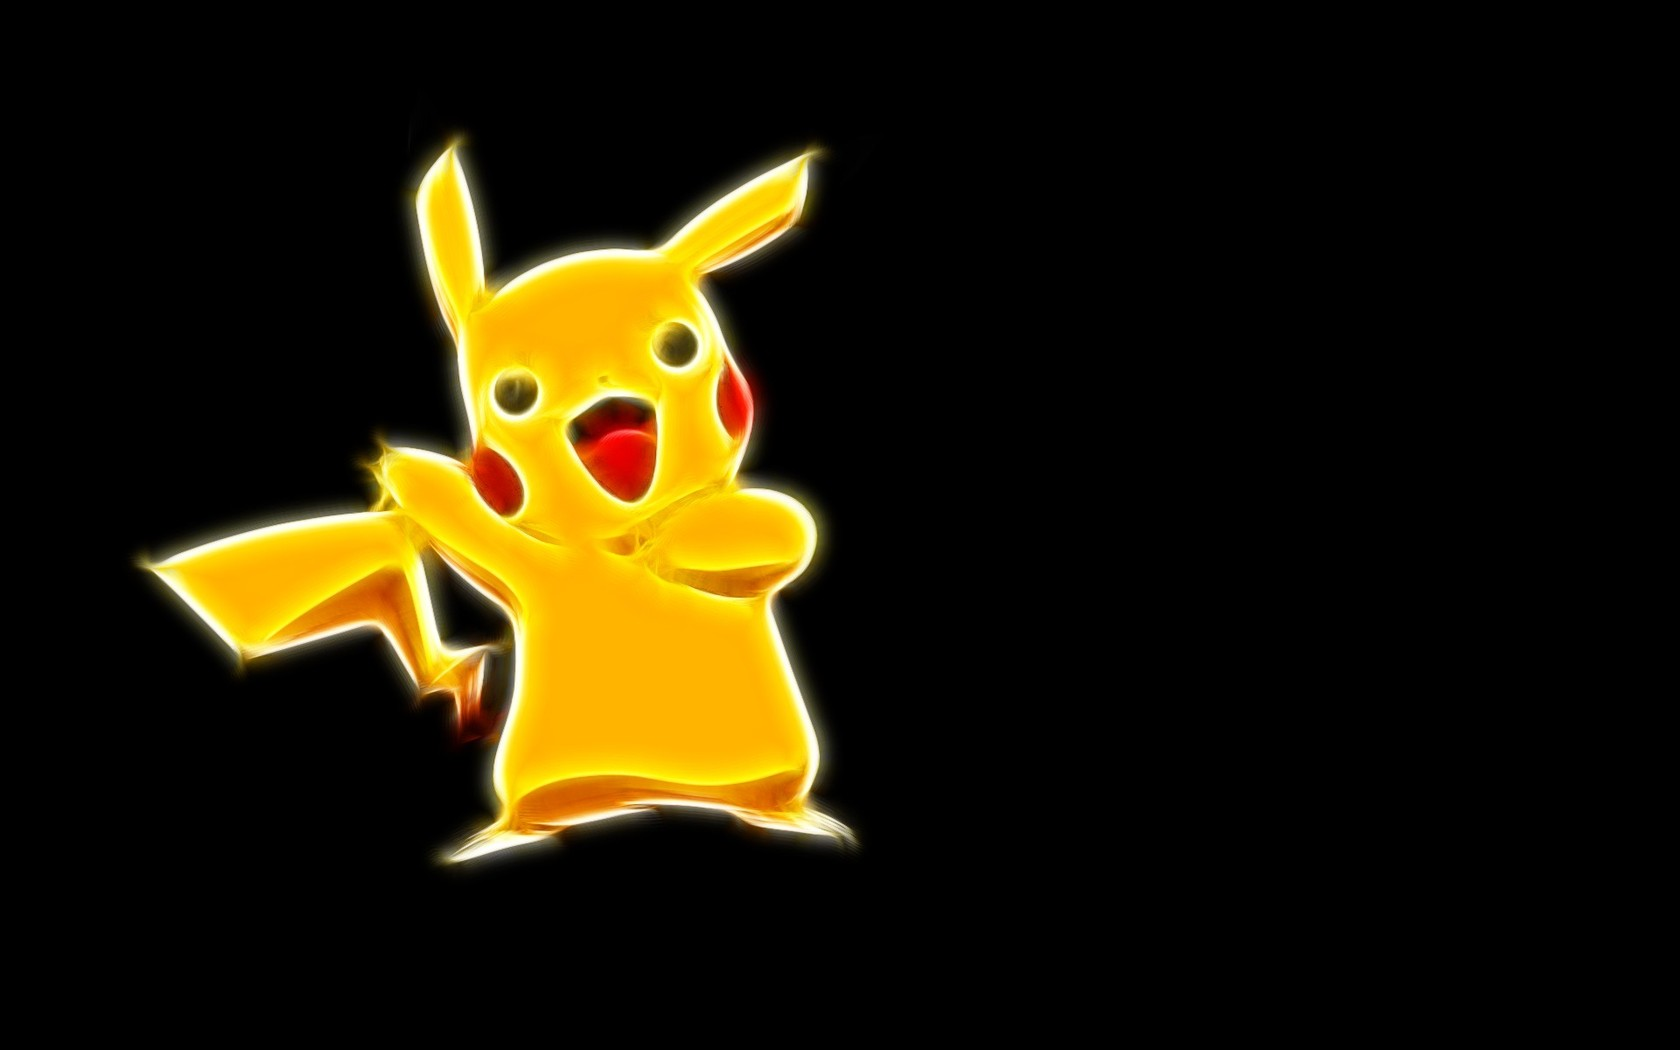 Pikachu   Pokemon wallpaper 4610 1680x1050